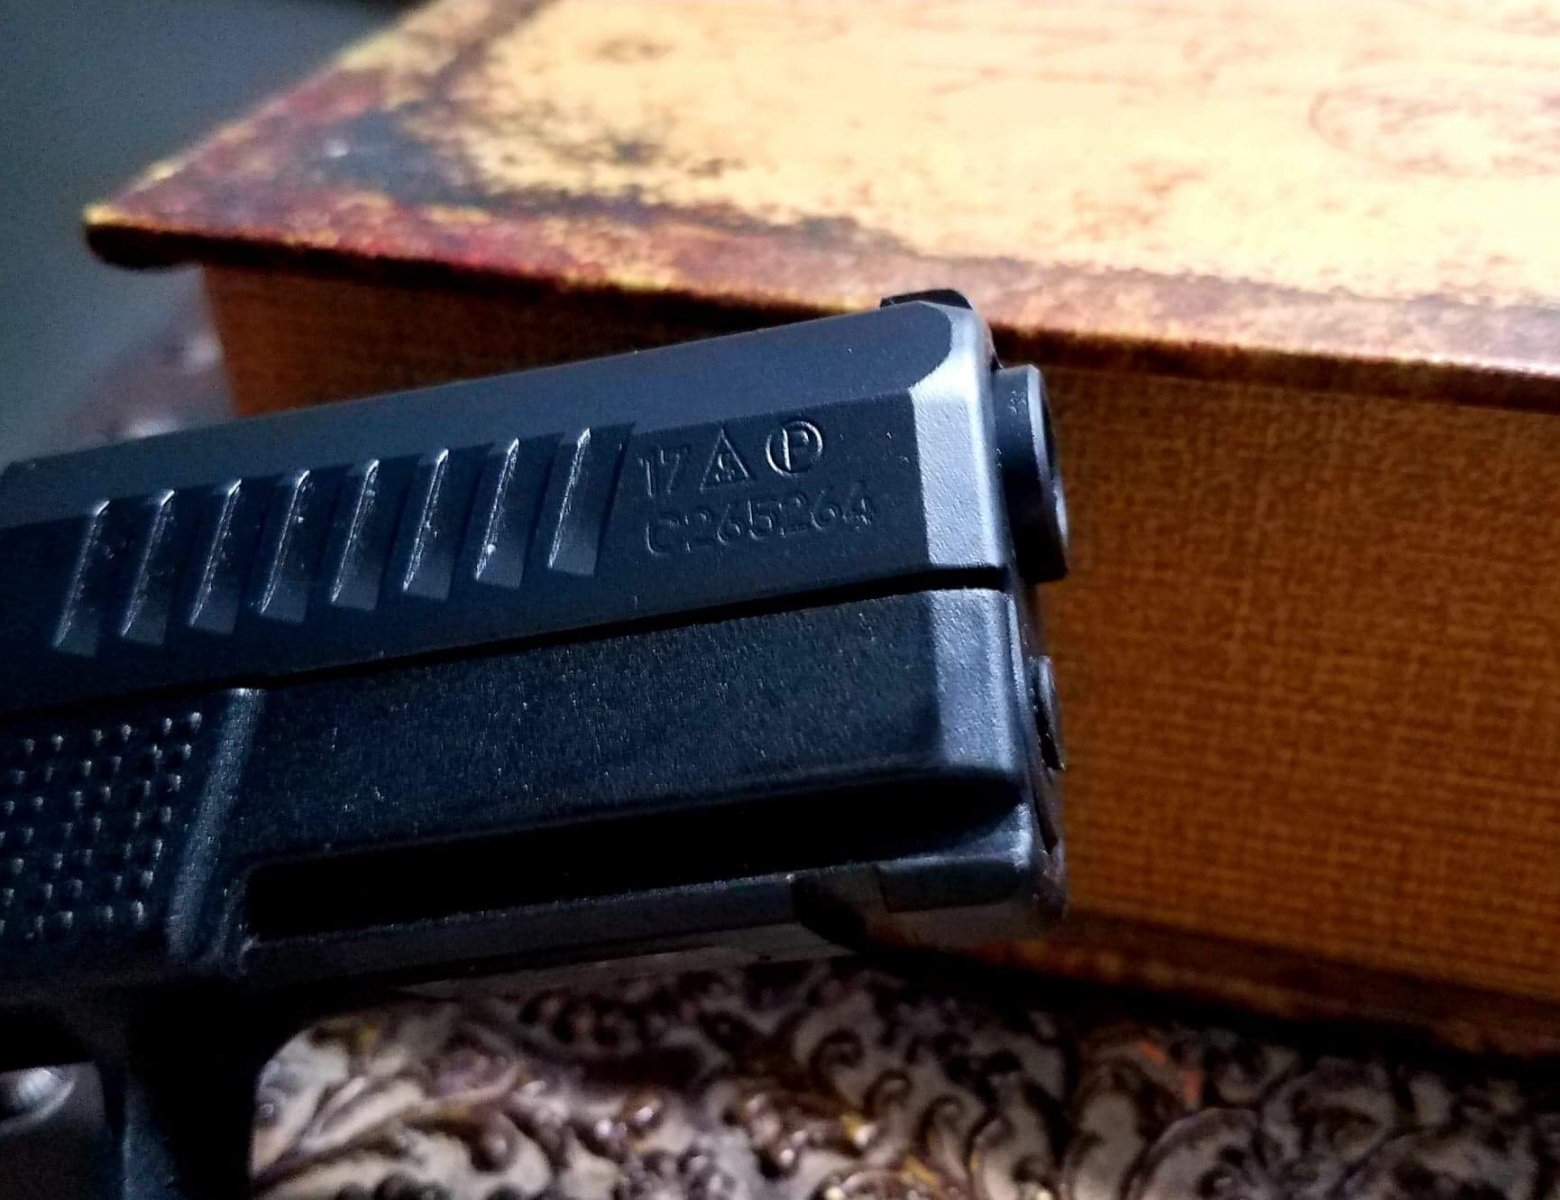 CZ P10C is this normal? Guide rod protruding | The Leading Glock